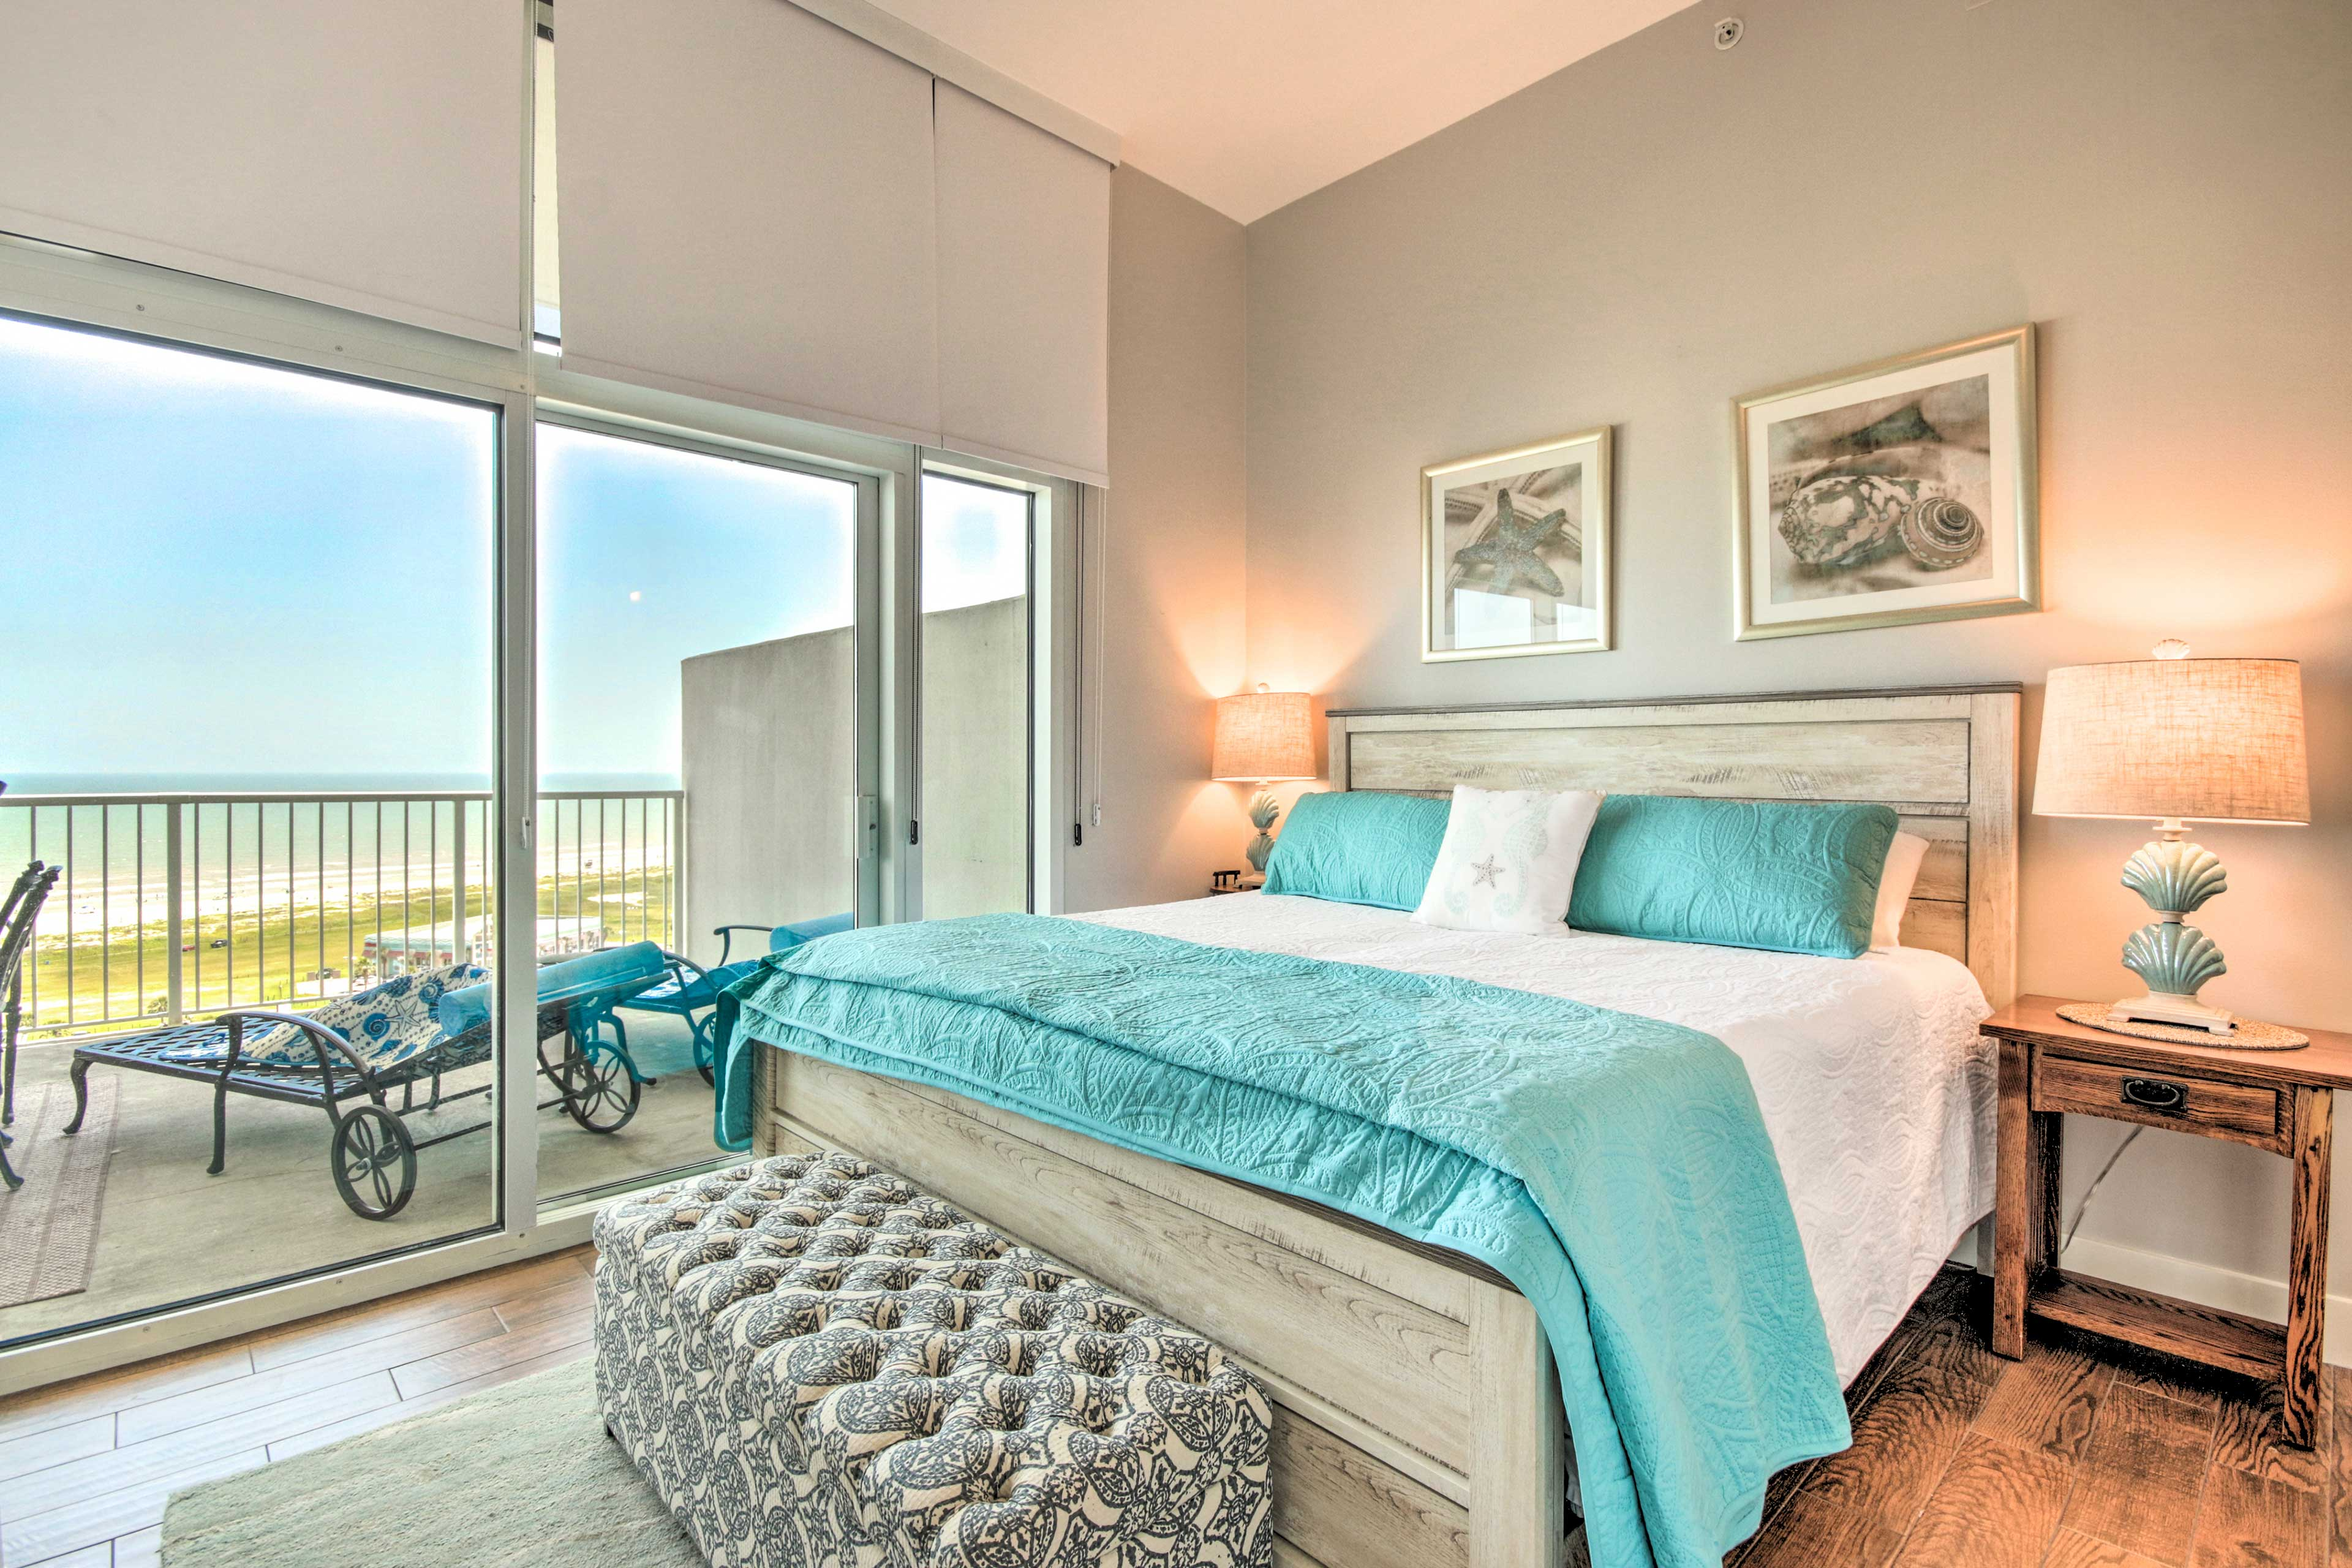 You'll quickly fall in love with the beach-themed accents.